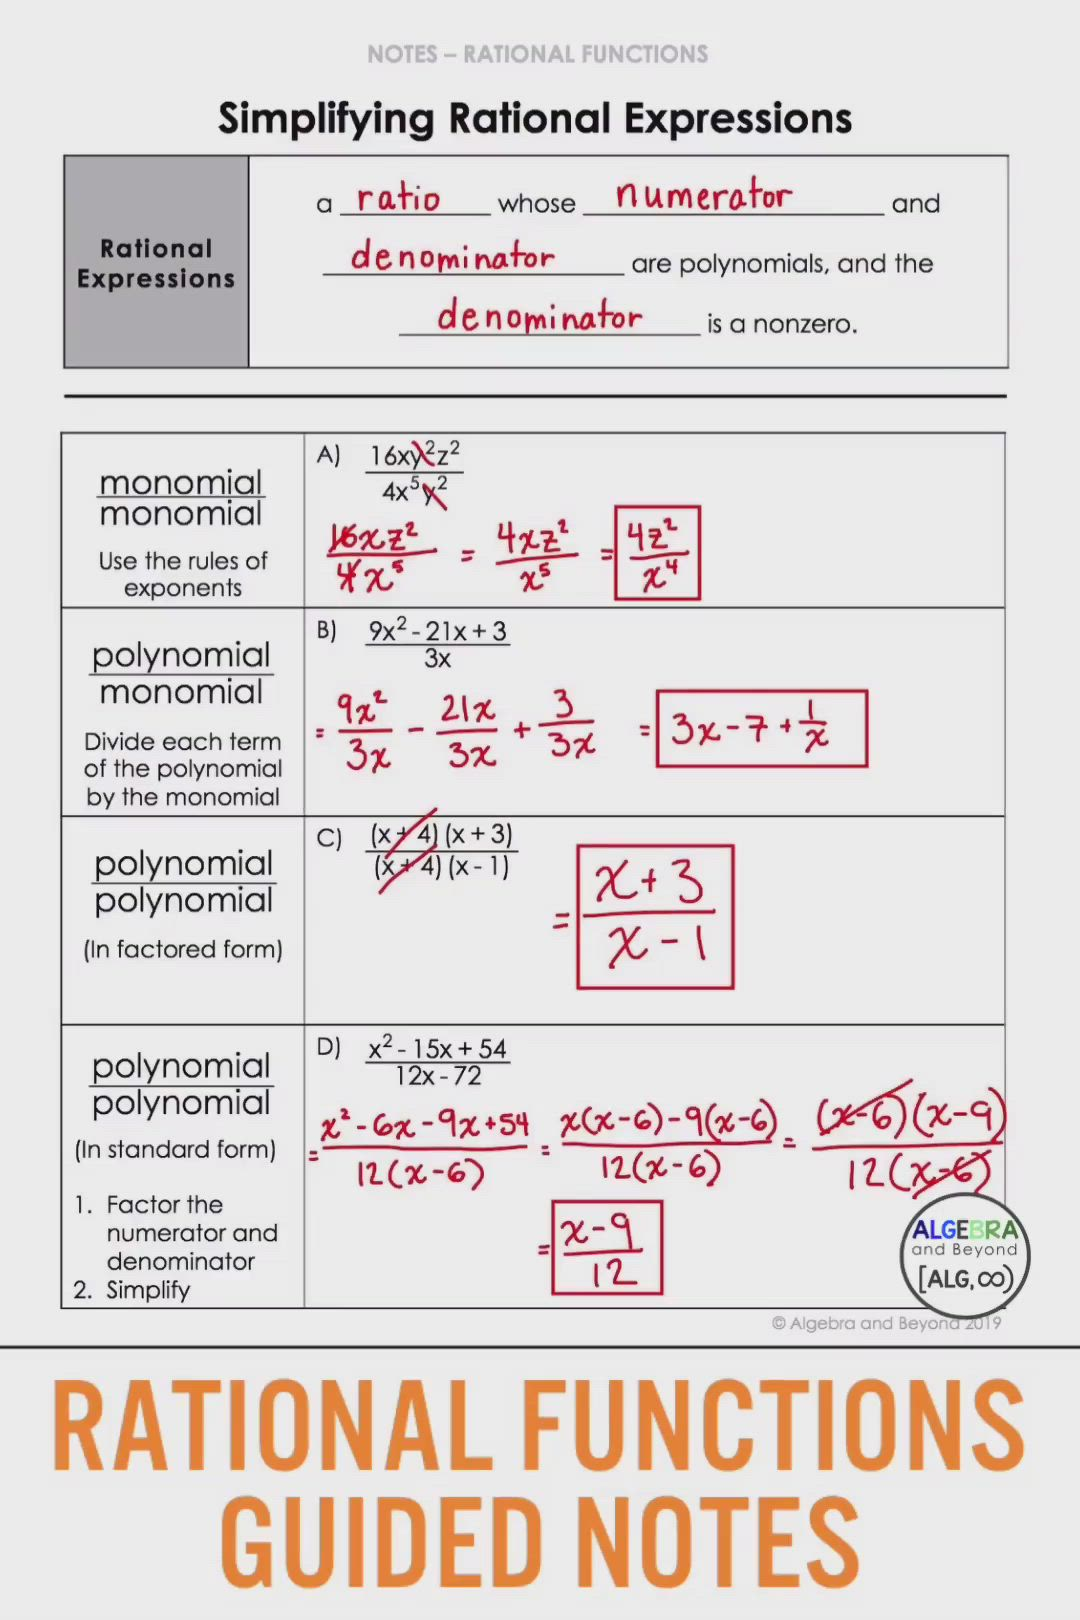 Rational Functions Video In 2020 Rational Function Studying Math Simplifying Algebraic Expressions